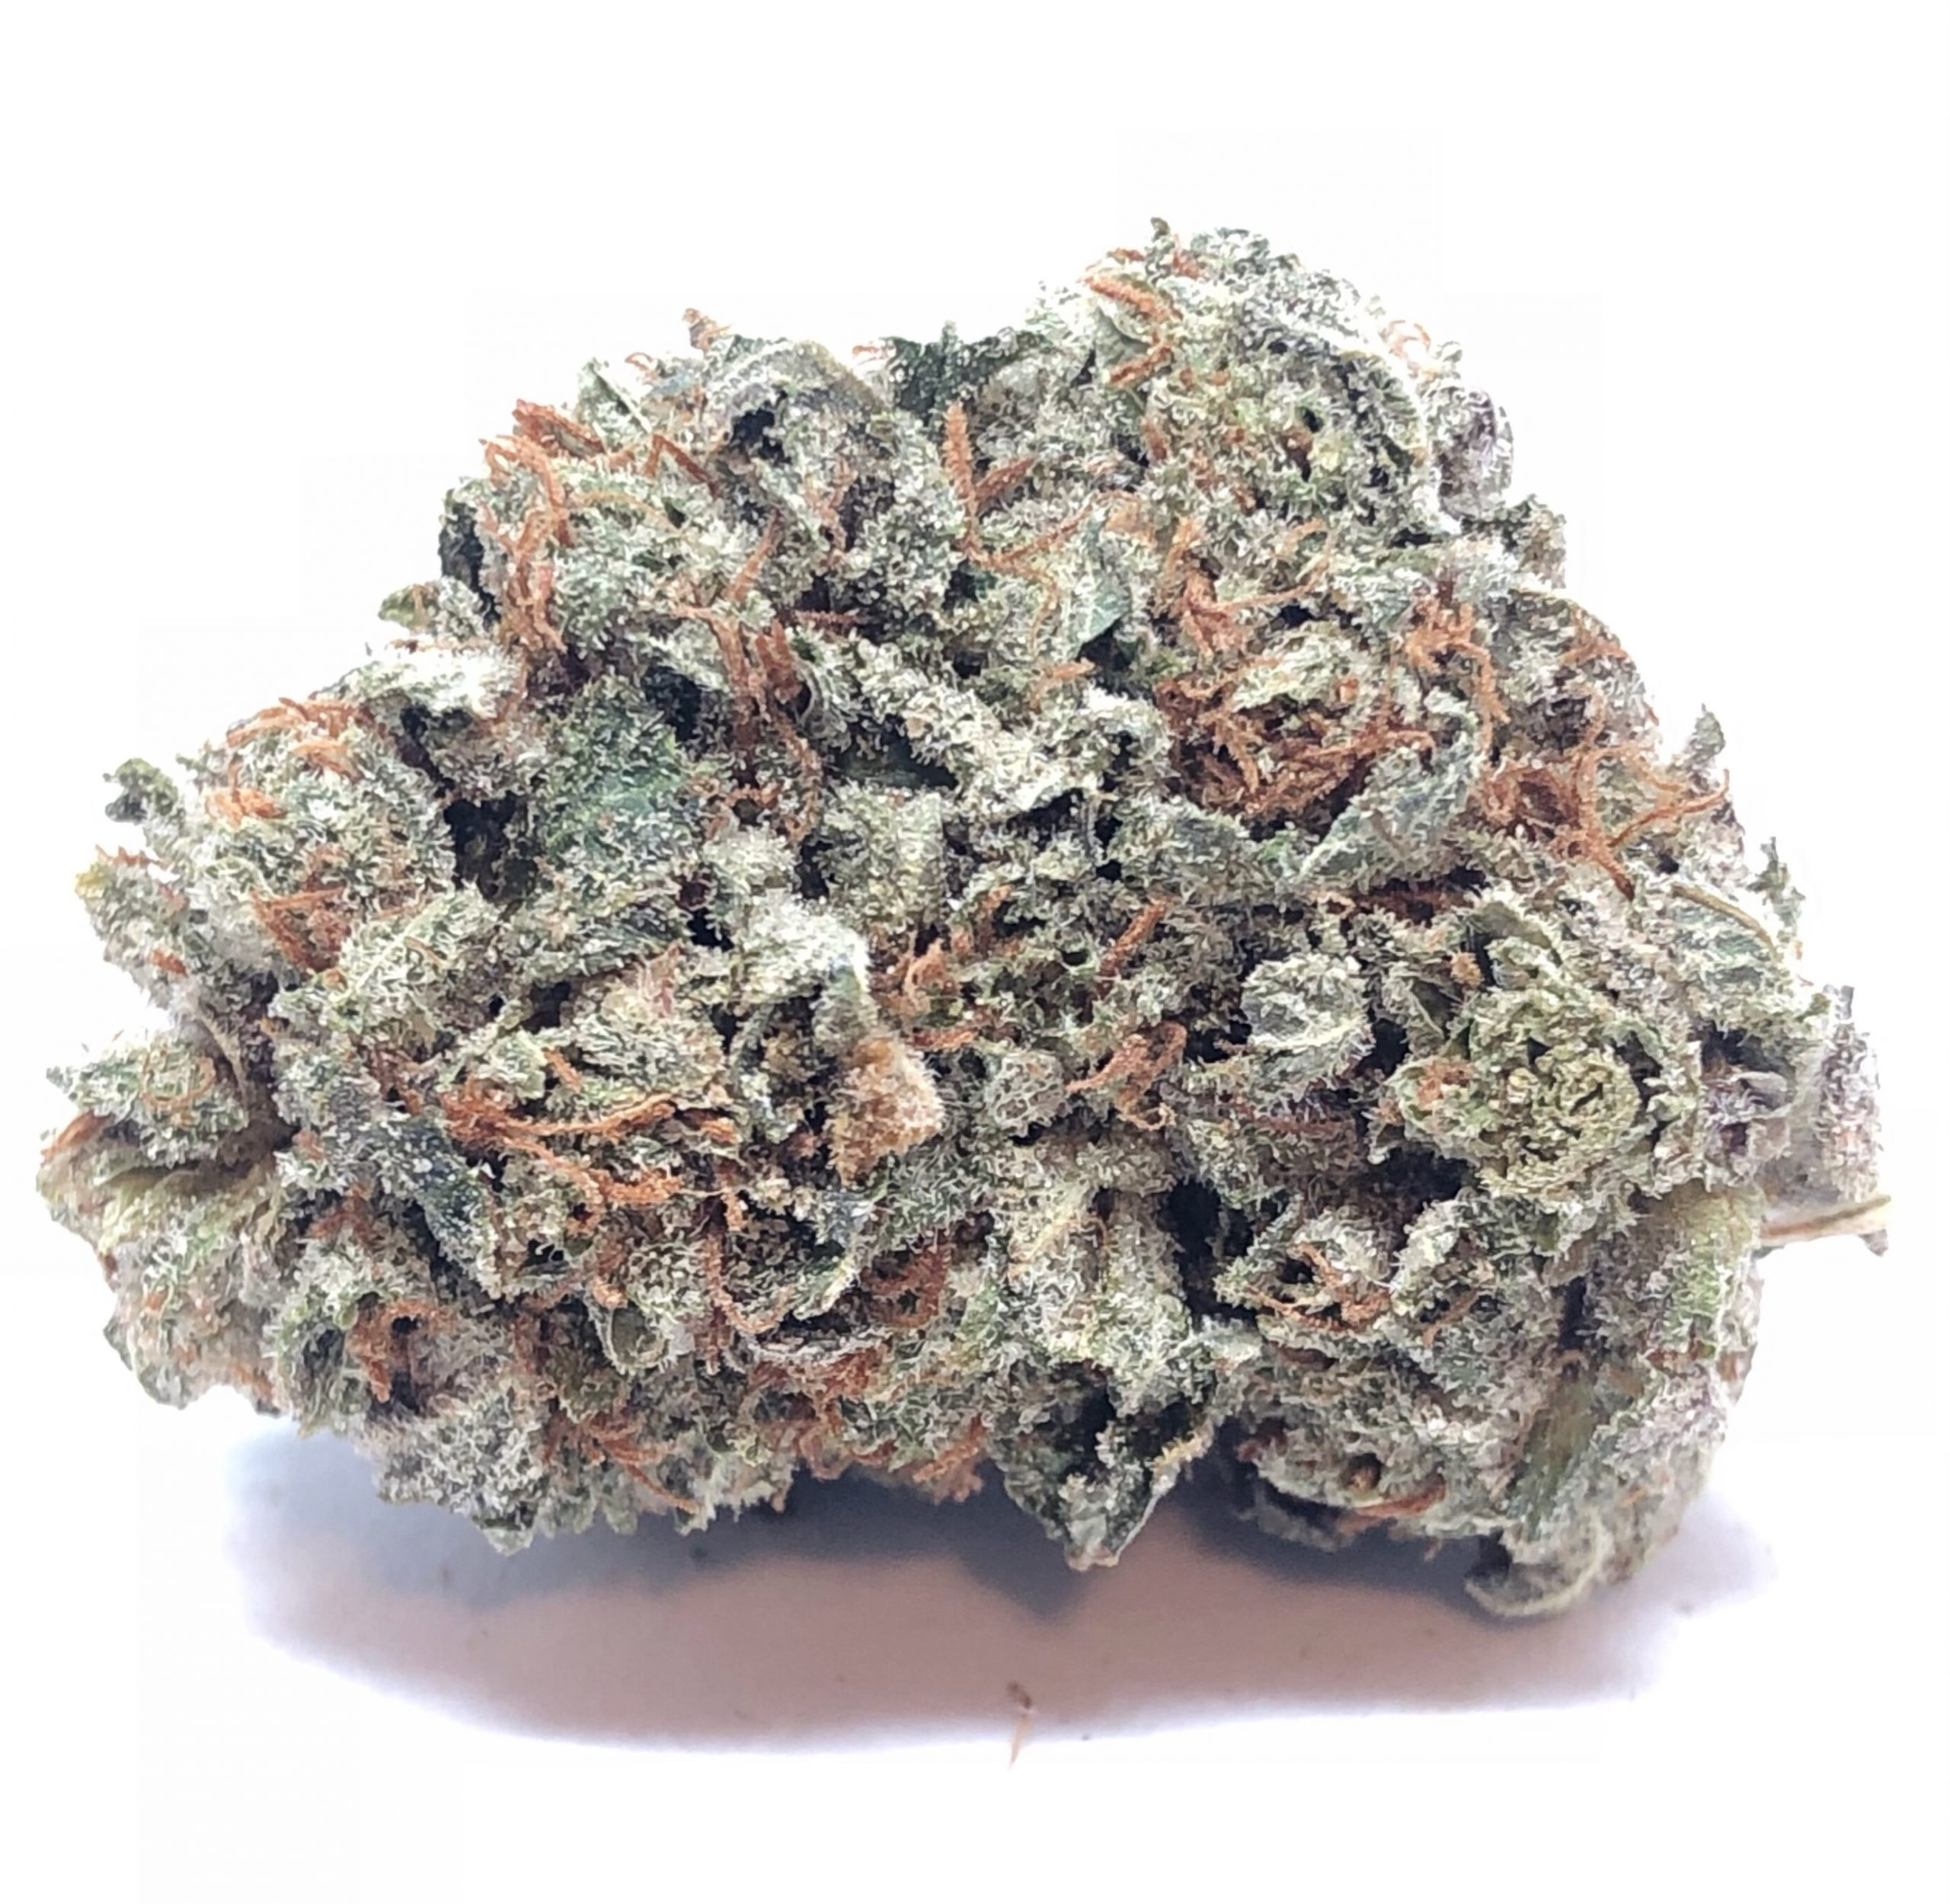 Kings Kush by Ounce Buddy - Image © 2021 Ounce Buddy. All Rights Reserved.